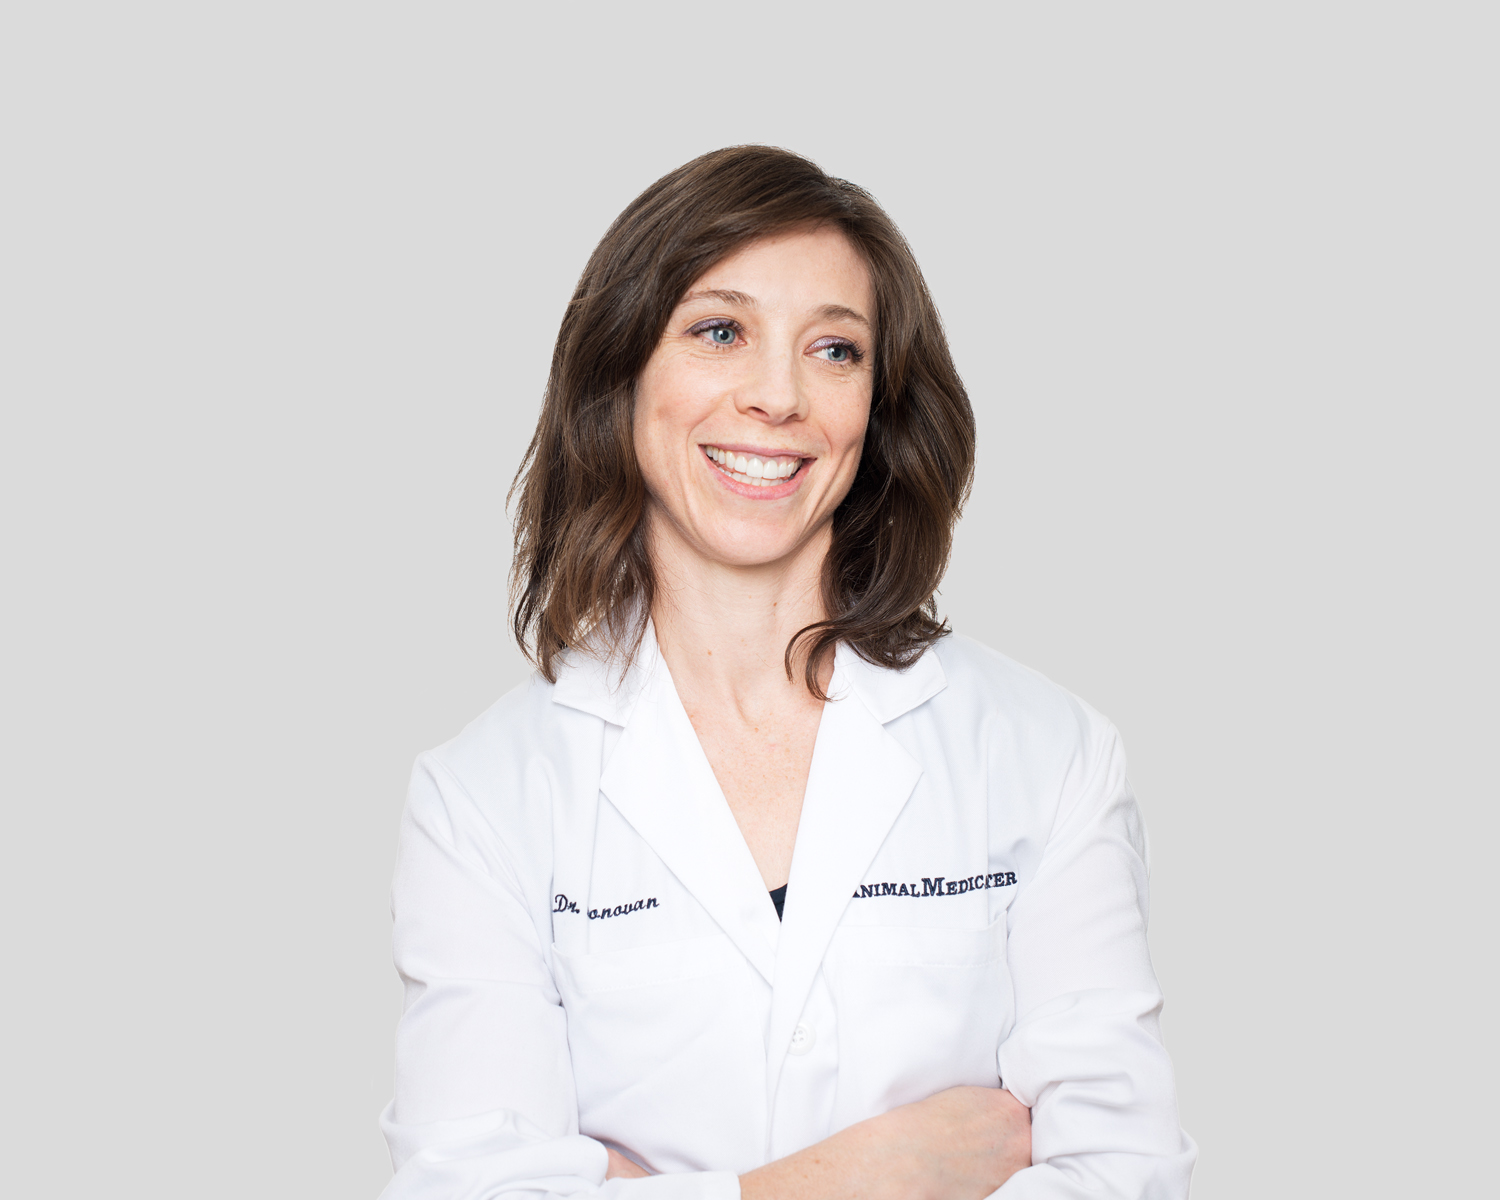 Dr. Taryn Donovan of the Animal Medical Center in New York City